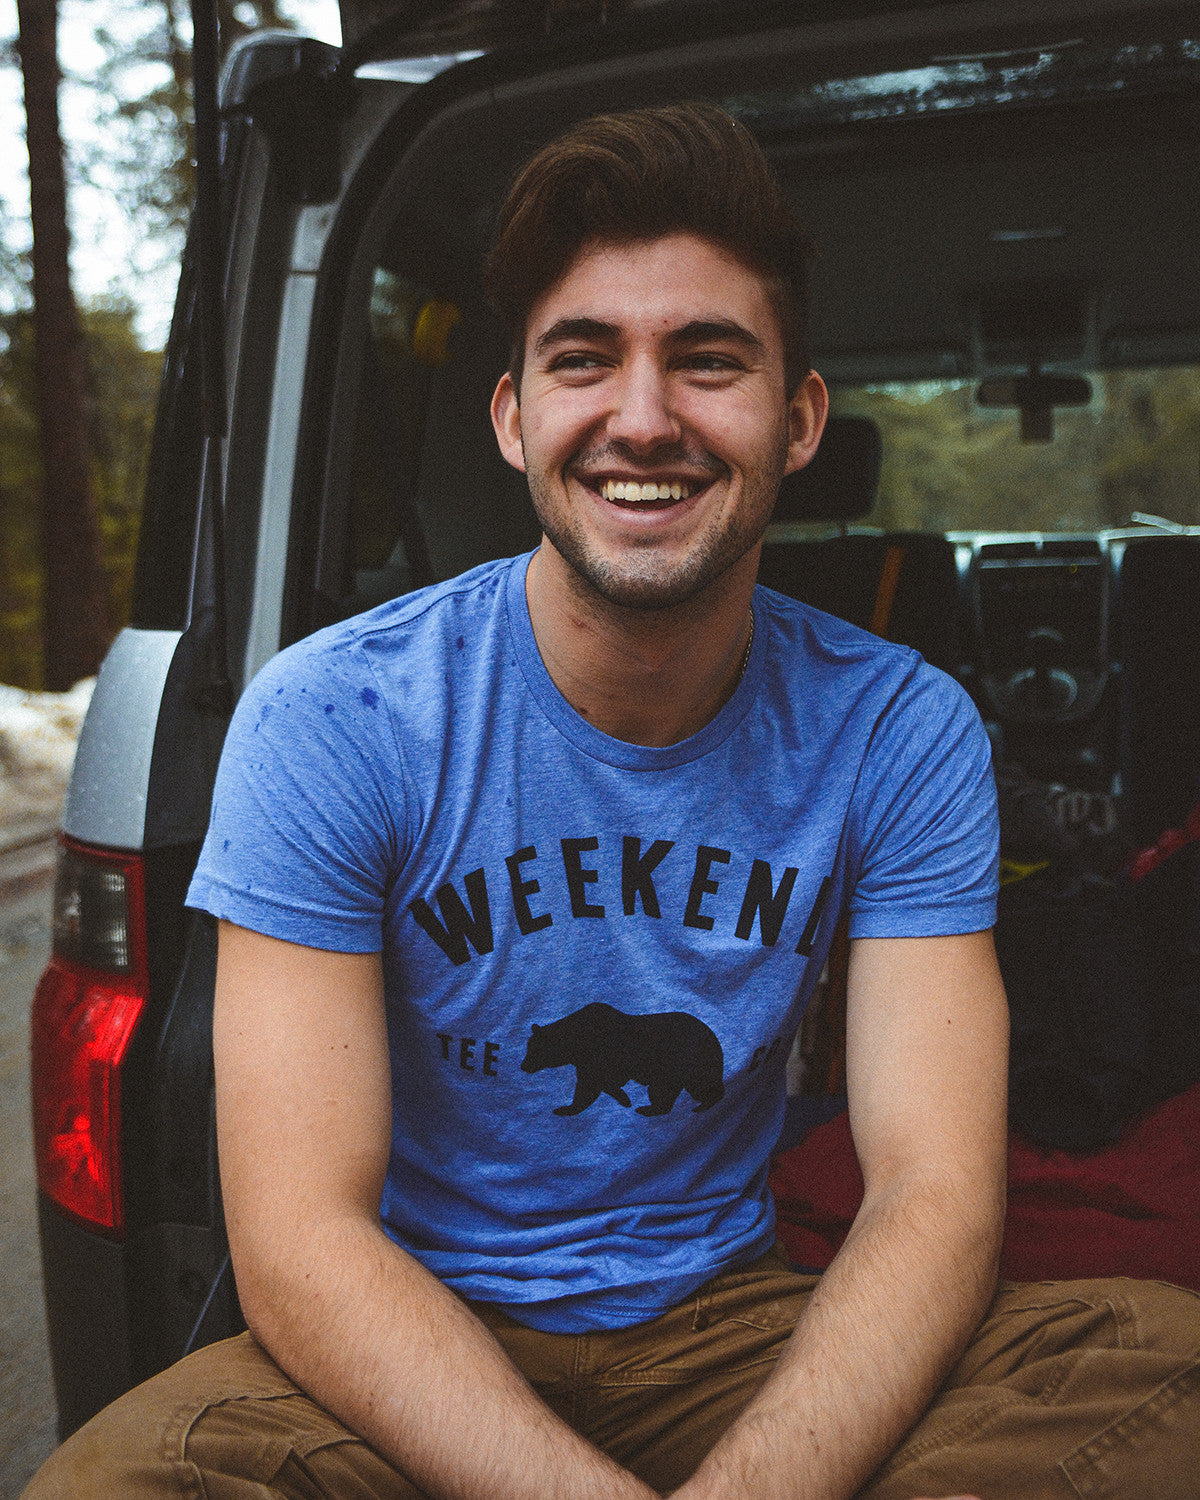 Weekend Bear Tee